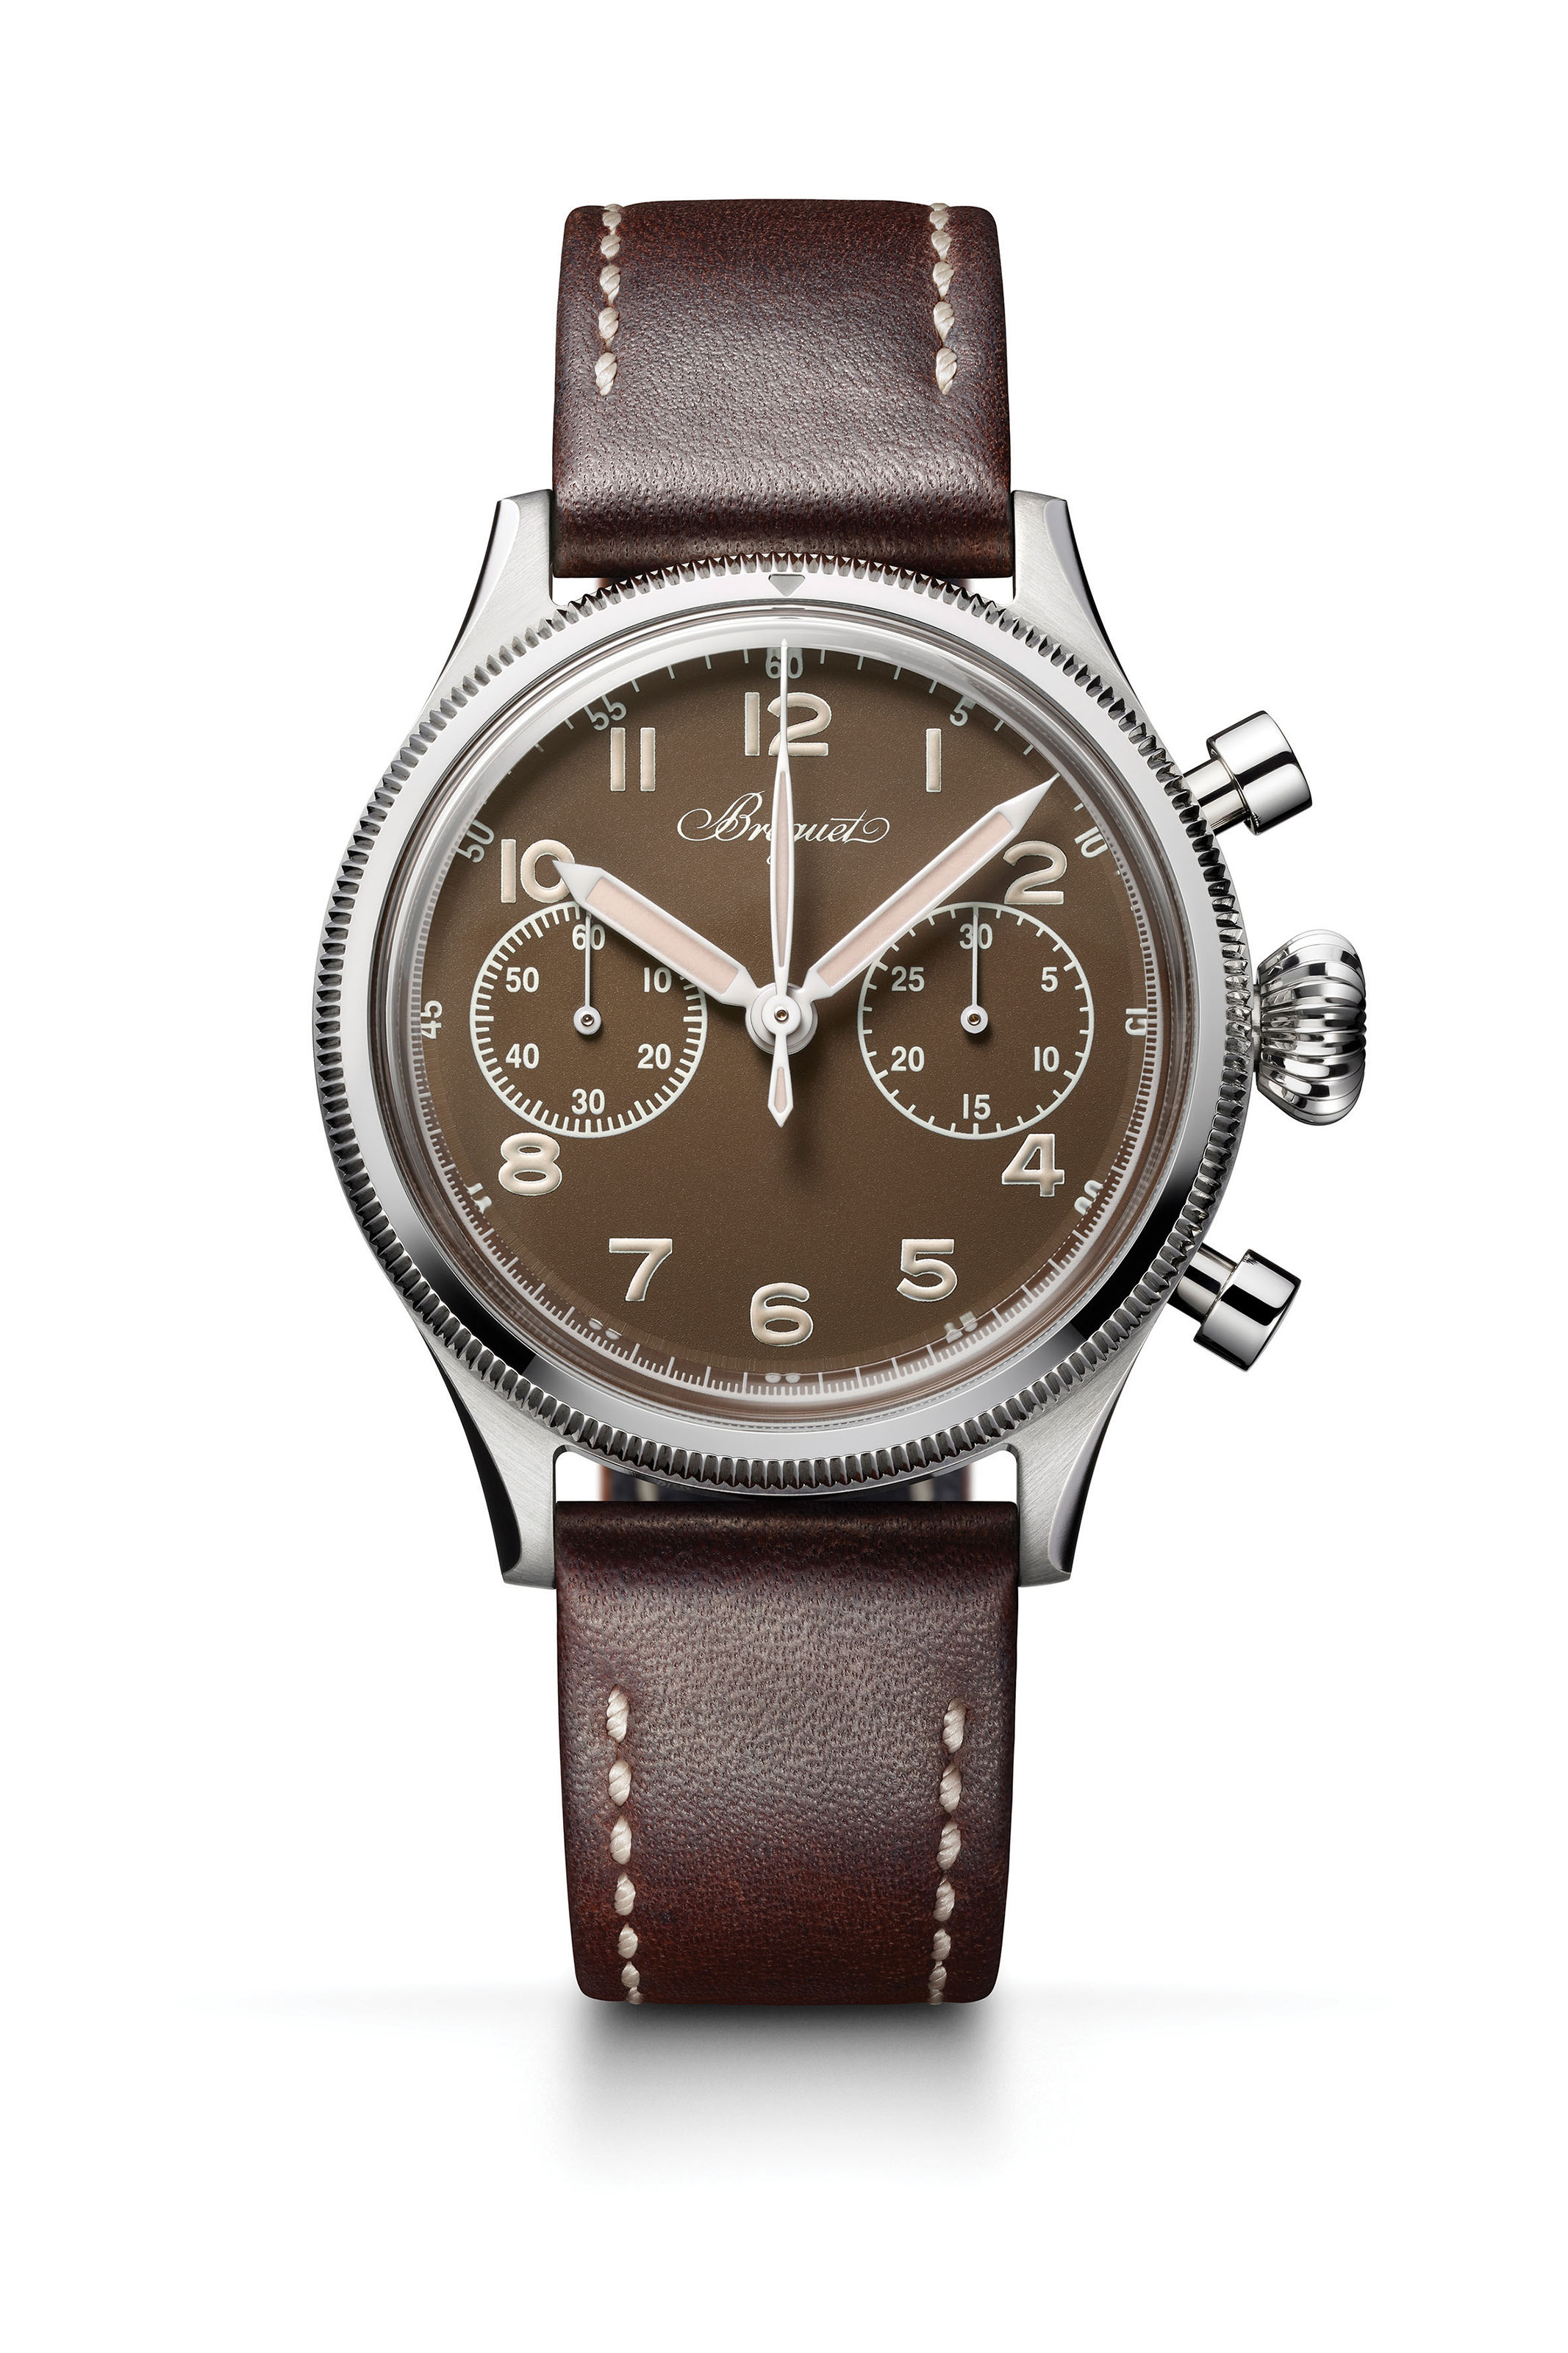 BREGUET BREGUET TYPE 20 ONLY WATCH 2019  In homage to both watchmaking and aviation, Breguet reissues a unique version of its Type 20 pilot chronograph from the fifties in a form that is very faithful to the original.